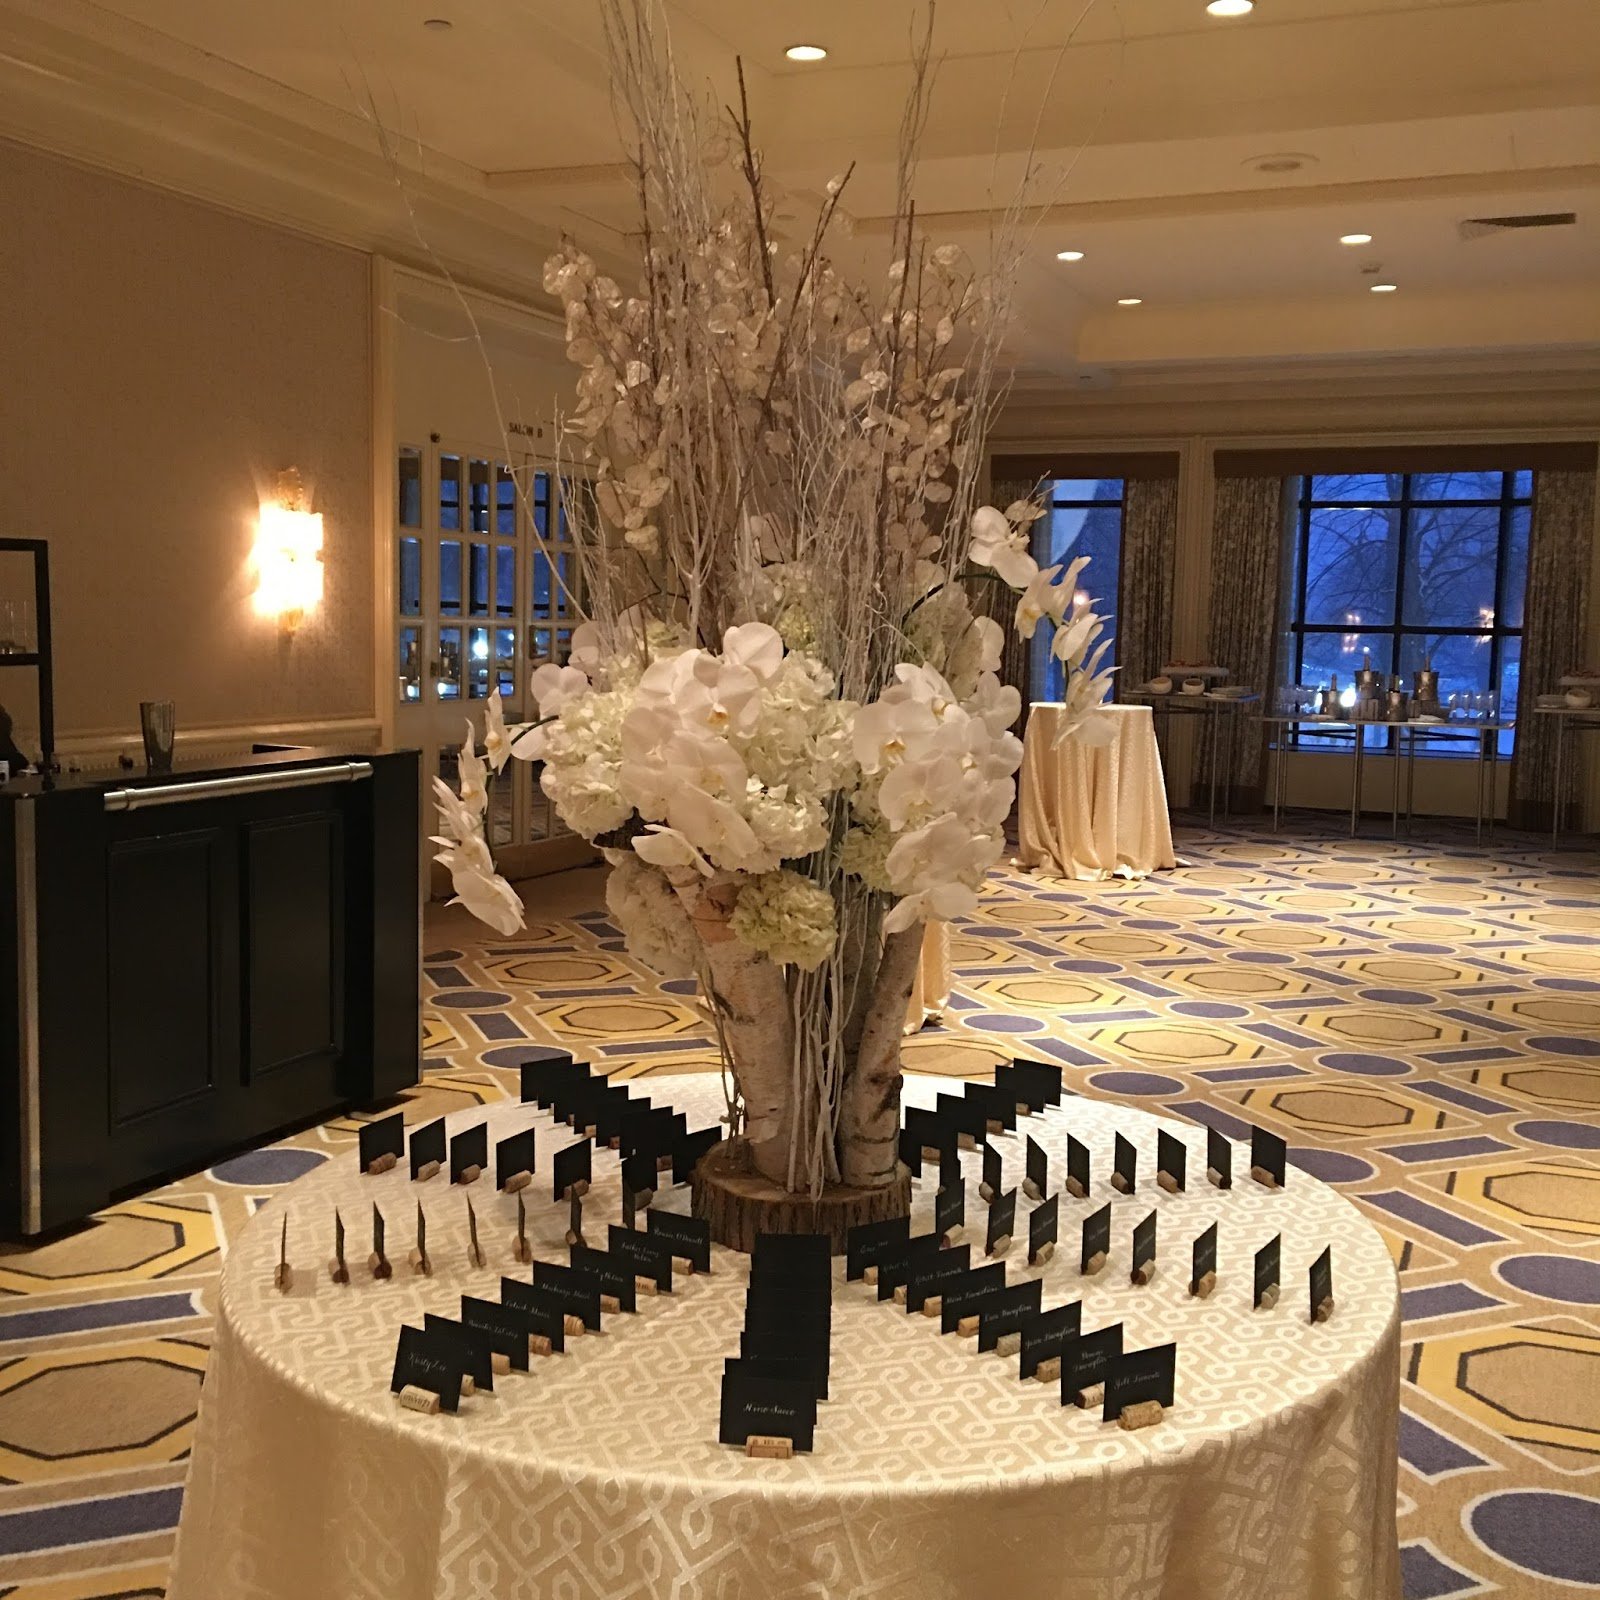 bespoke boston weddings; escort card table